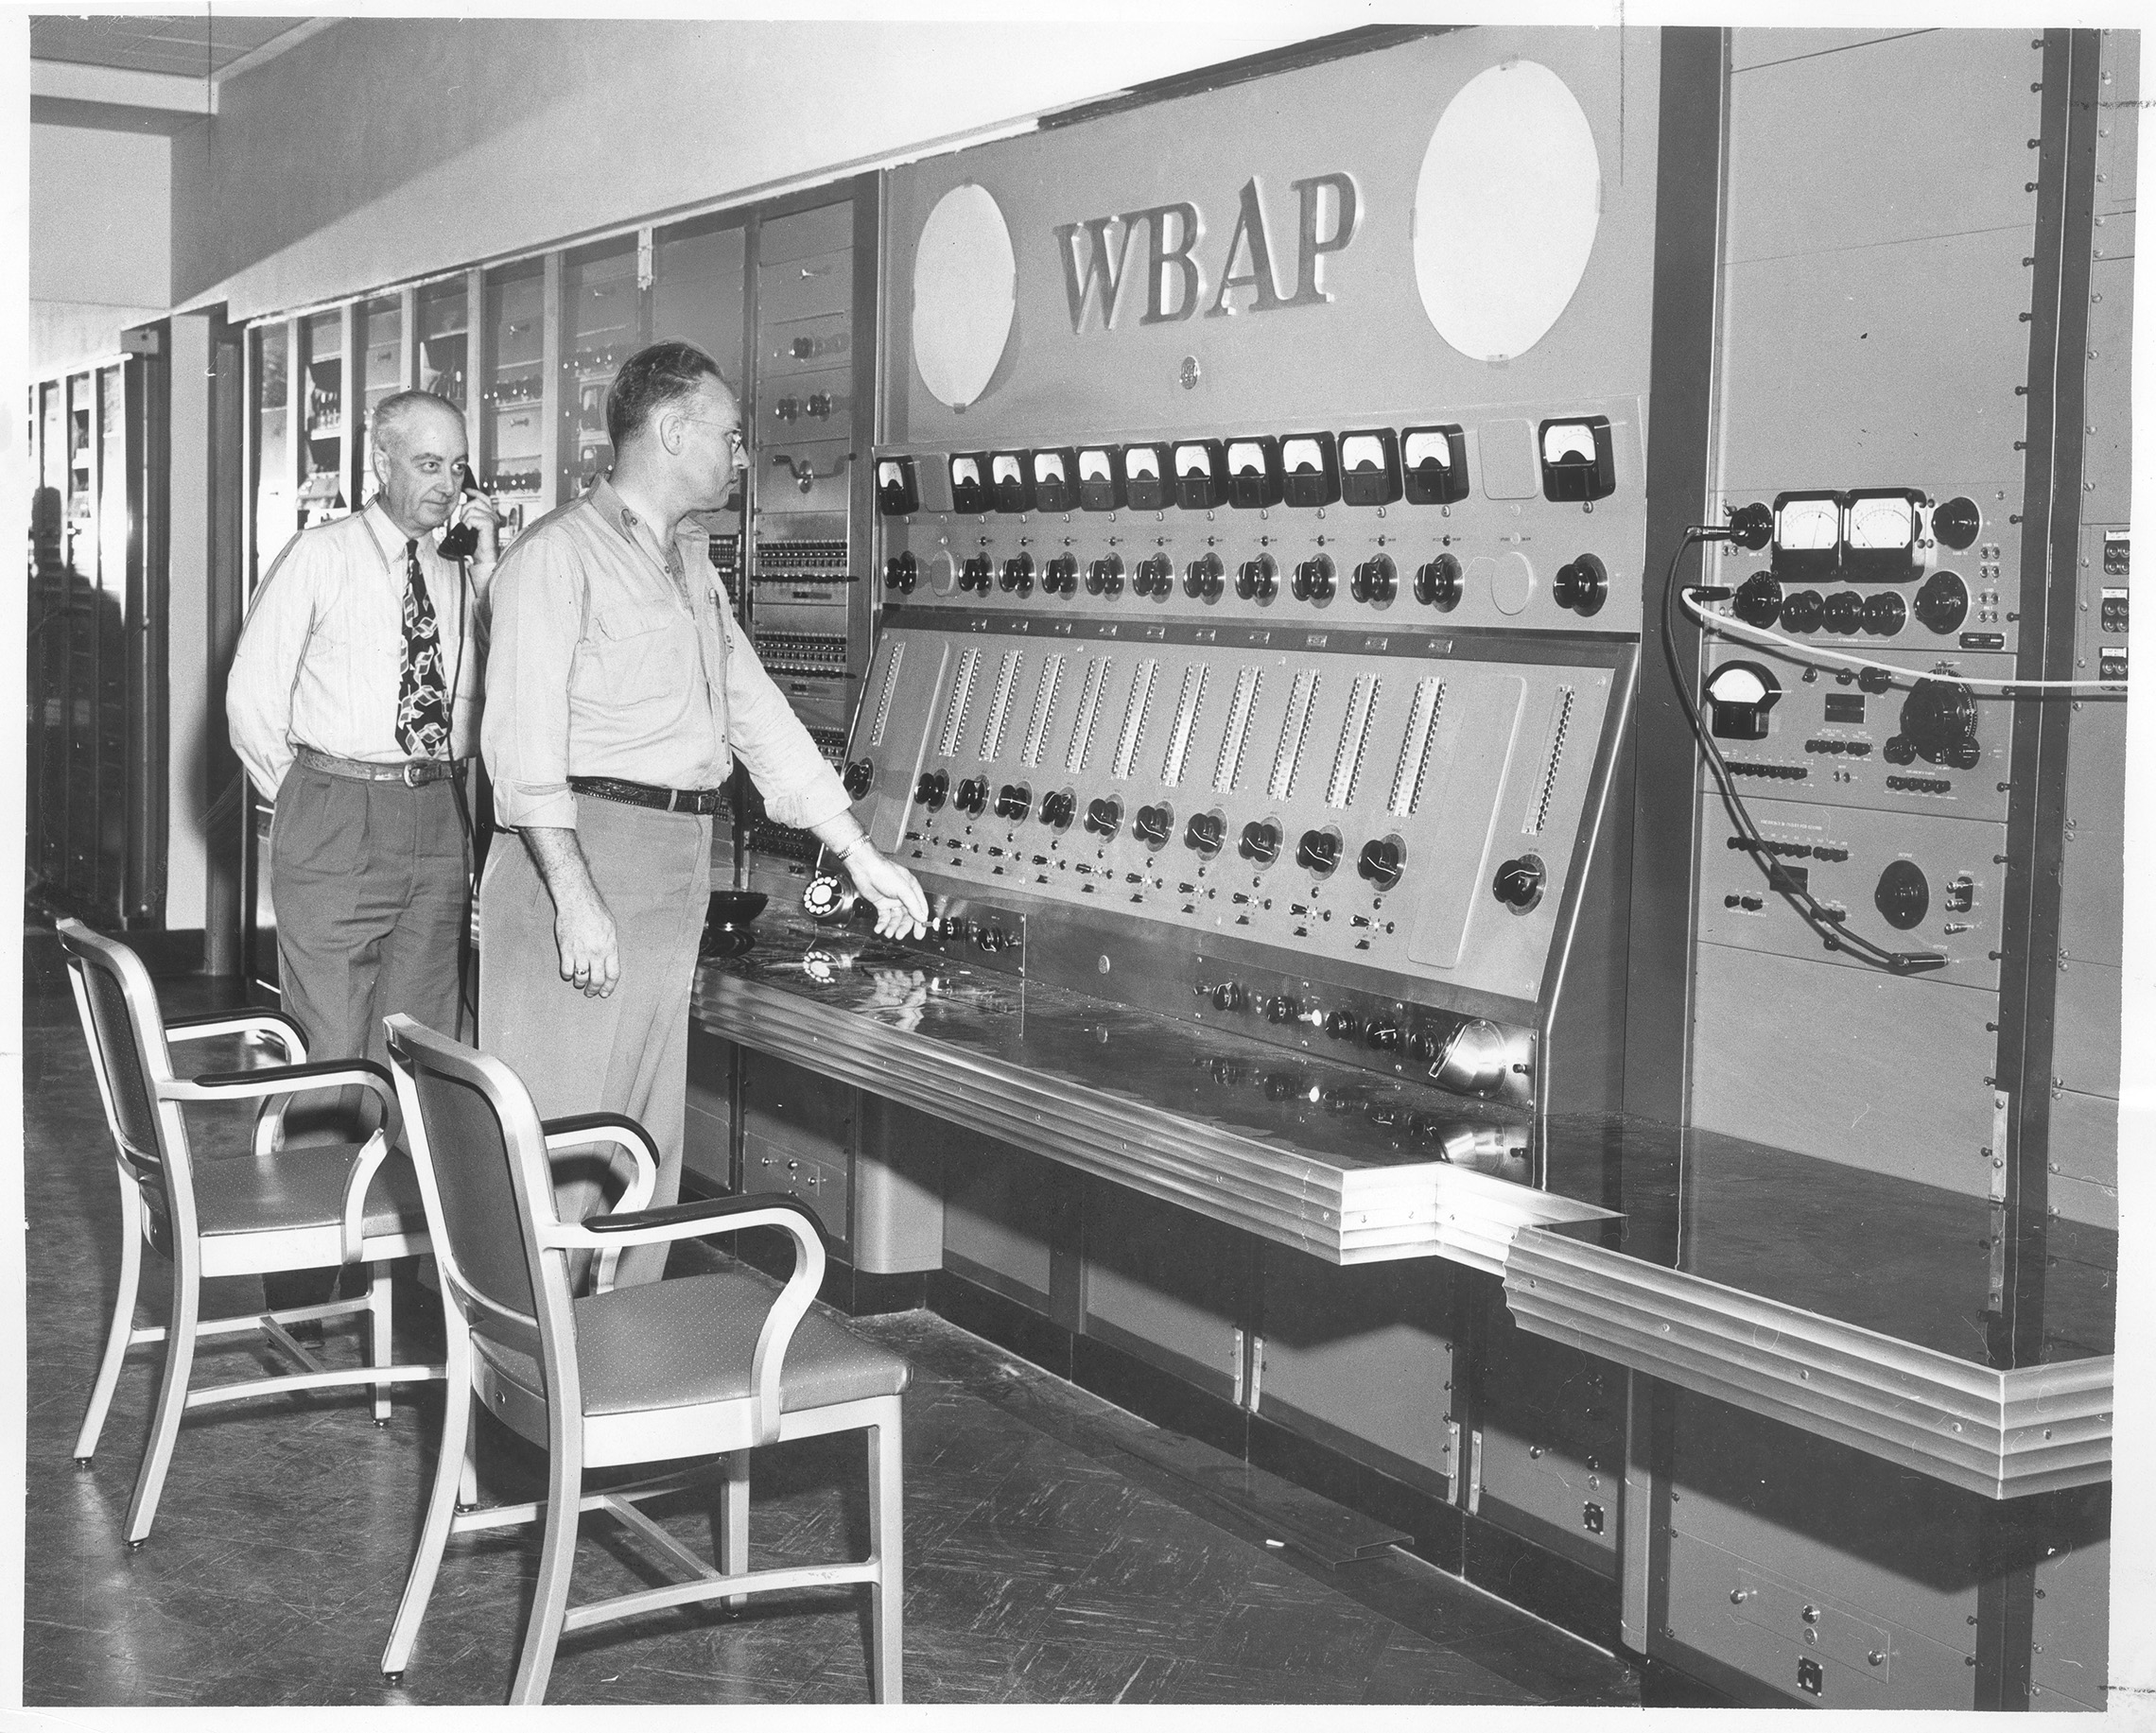 Roy Bond, assistant master control supervisor, and R.C. Stinson, director of engineering, starts first broadcast of WBAP-TV from new building at 3900 Barnett, 6 a.m., Sunday, 06/19/1949.